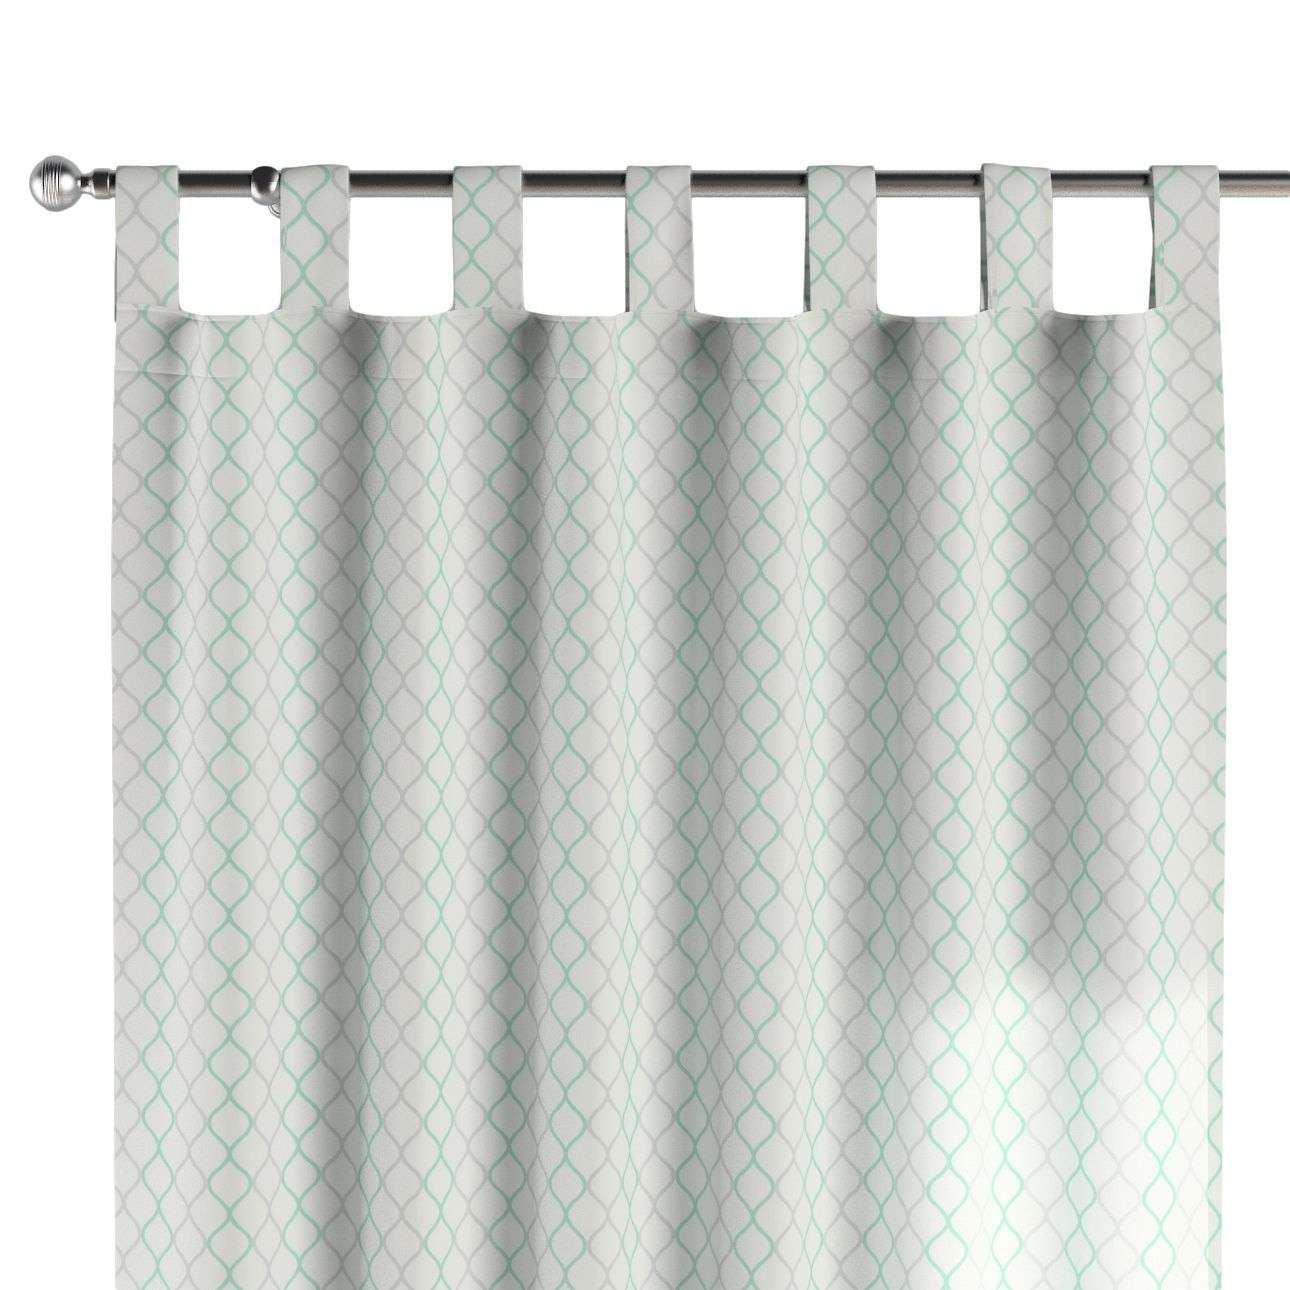 Tab top curtains 130 x 260 cm (51 x 102 inch) in collection Geometric, fabric: 141-47